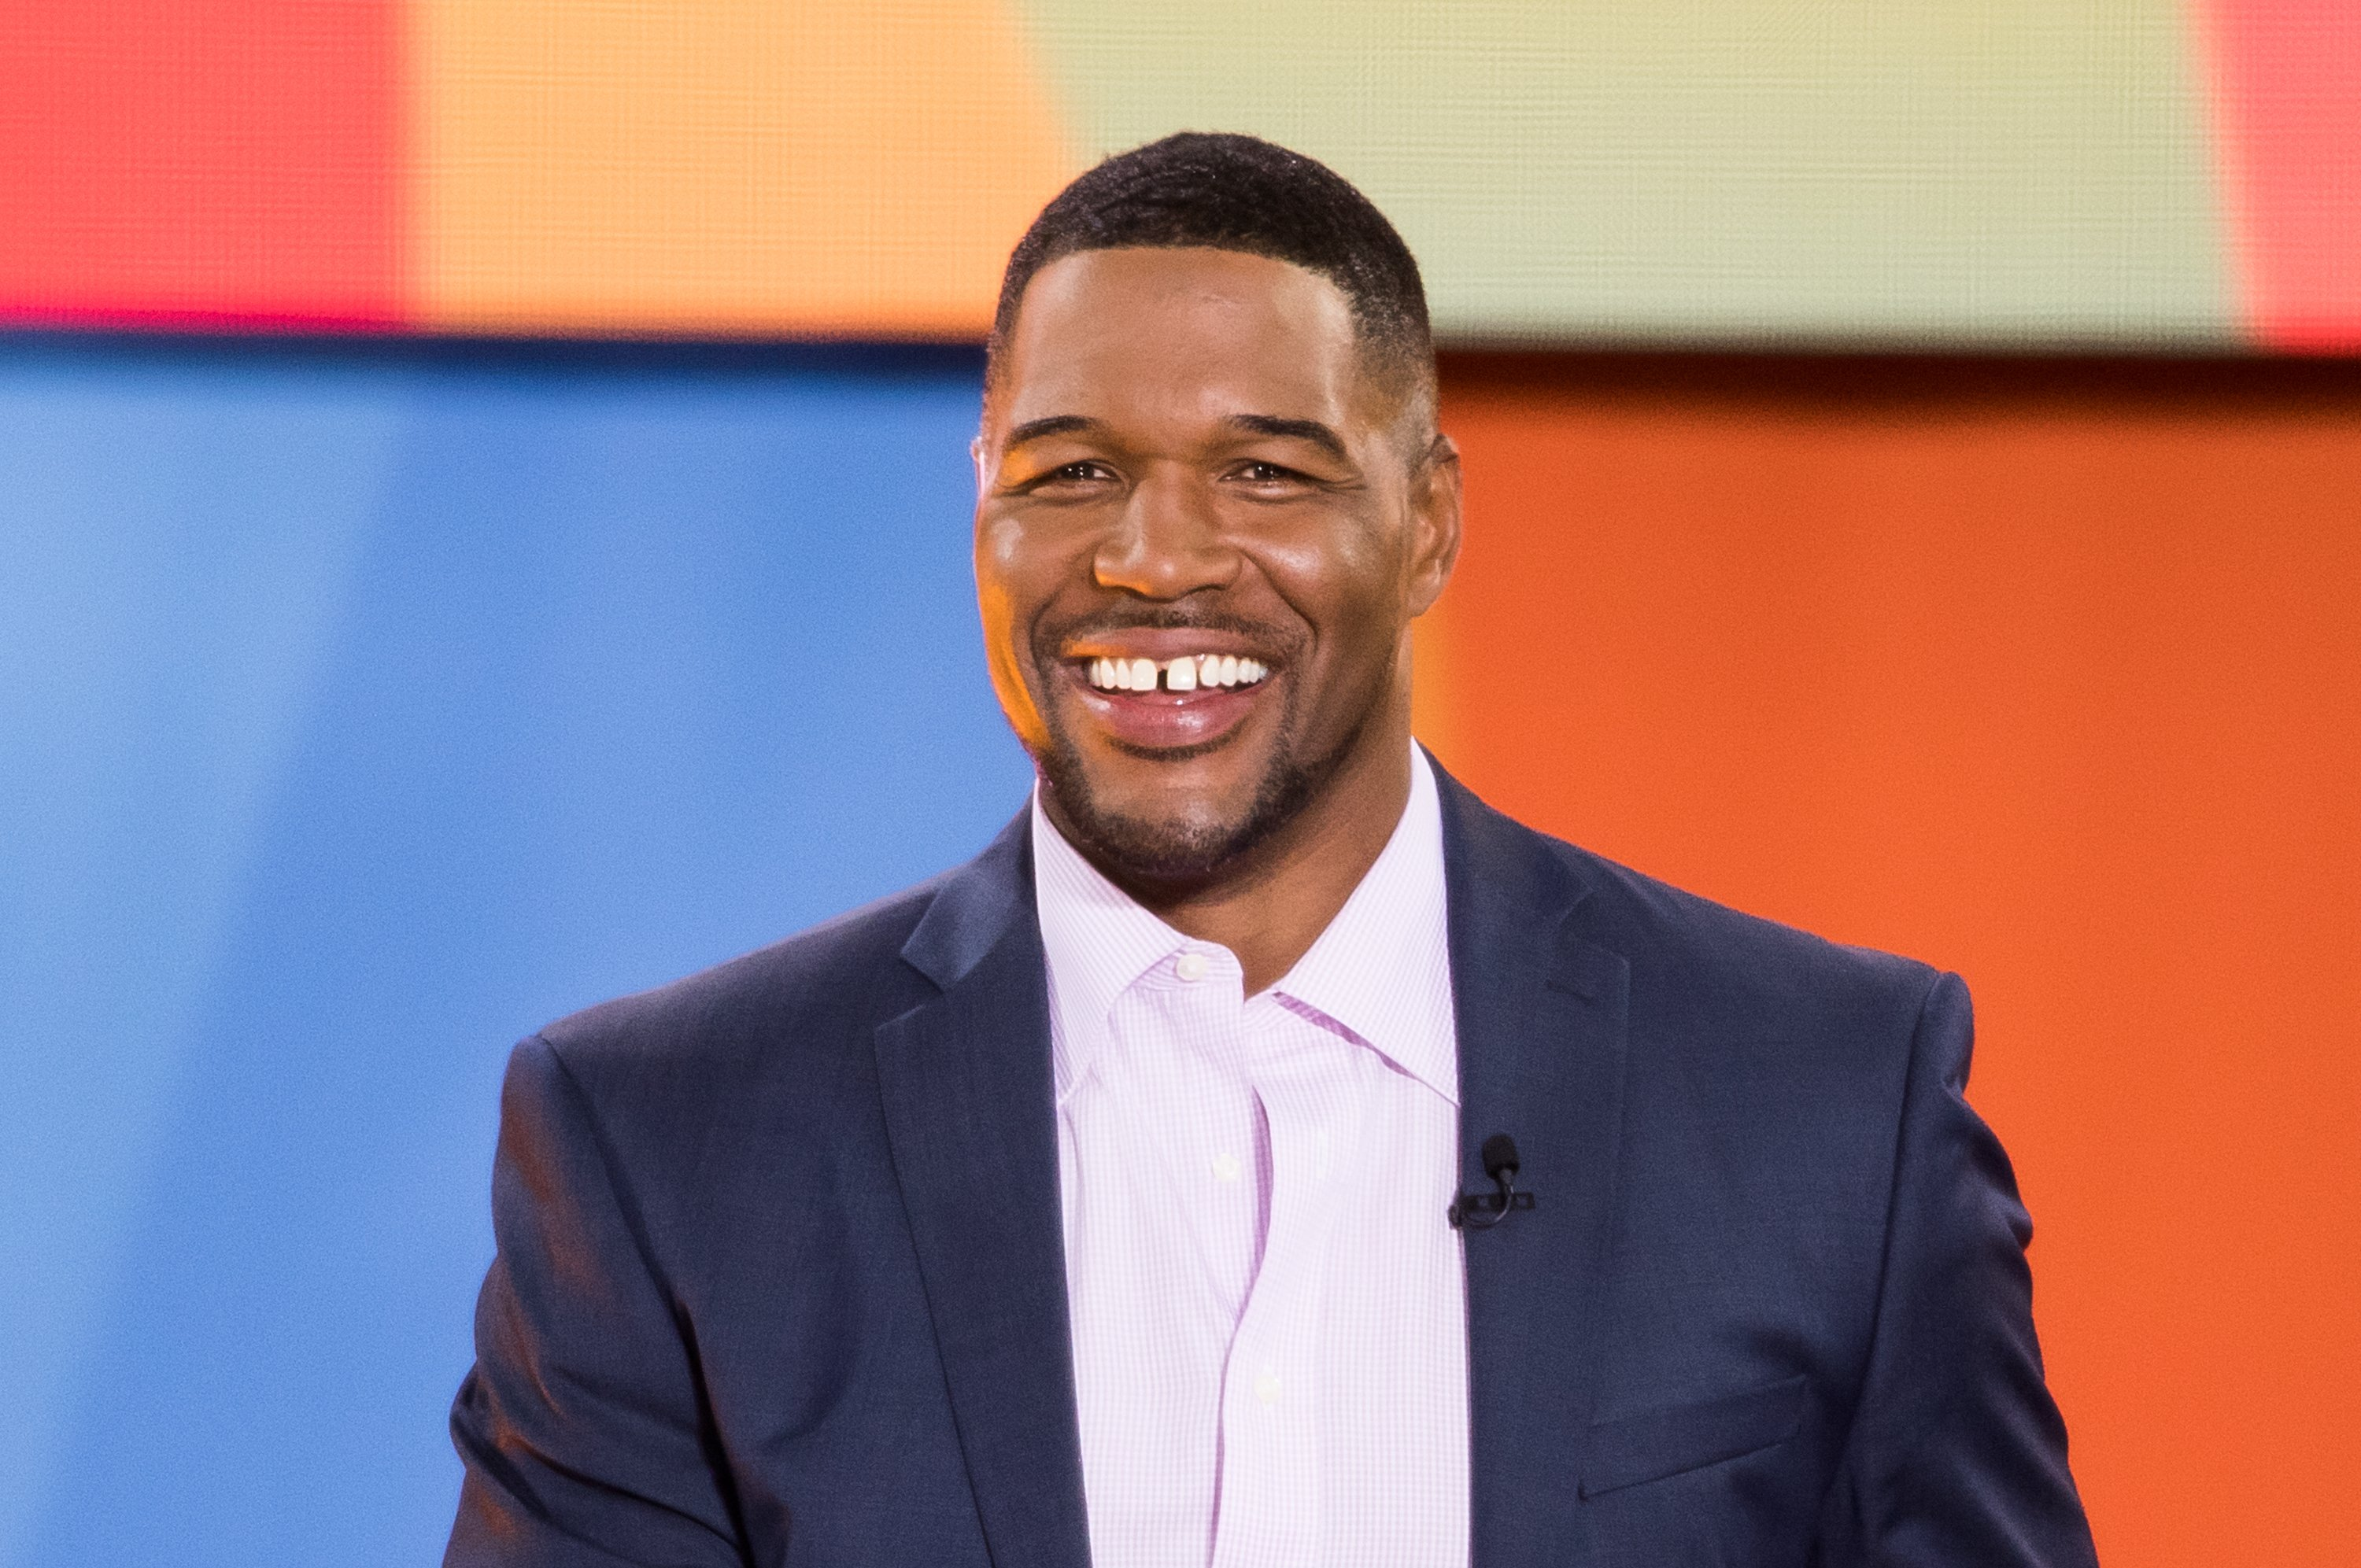 """Michael Strahan during filming of ABC's """"Good Morning America"""" at Rumsey Playfield, Central Park on July 6, 2018 in New York City. 